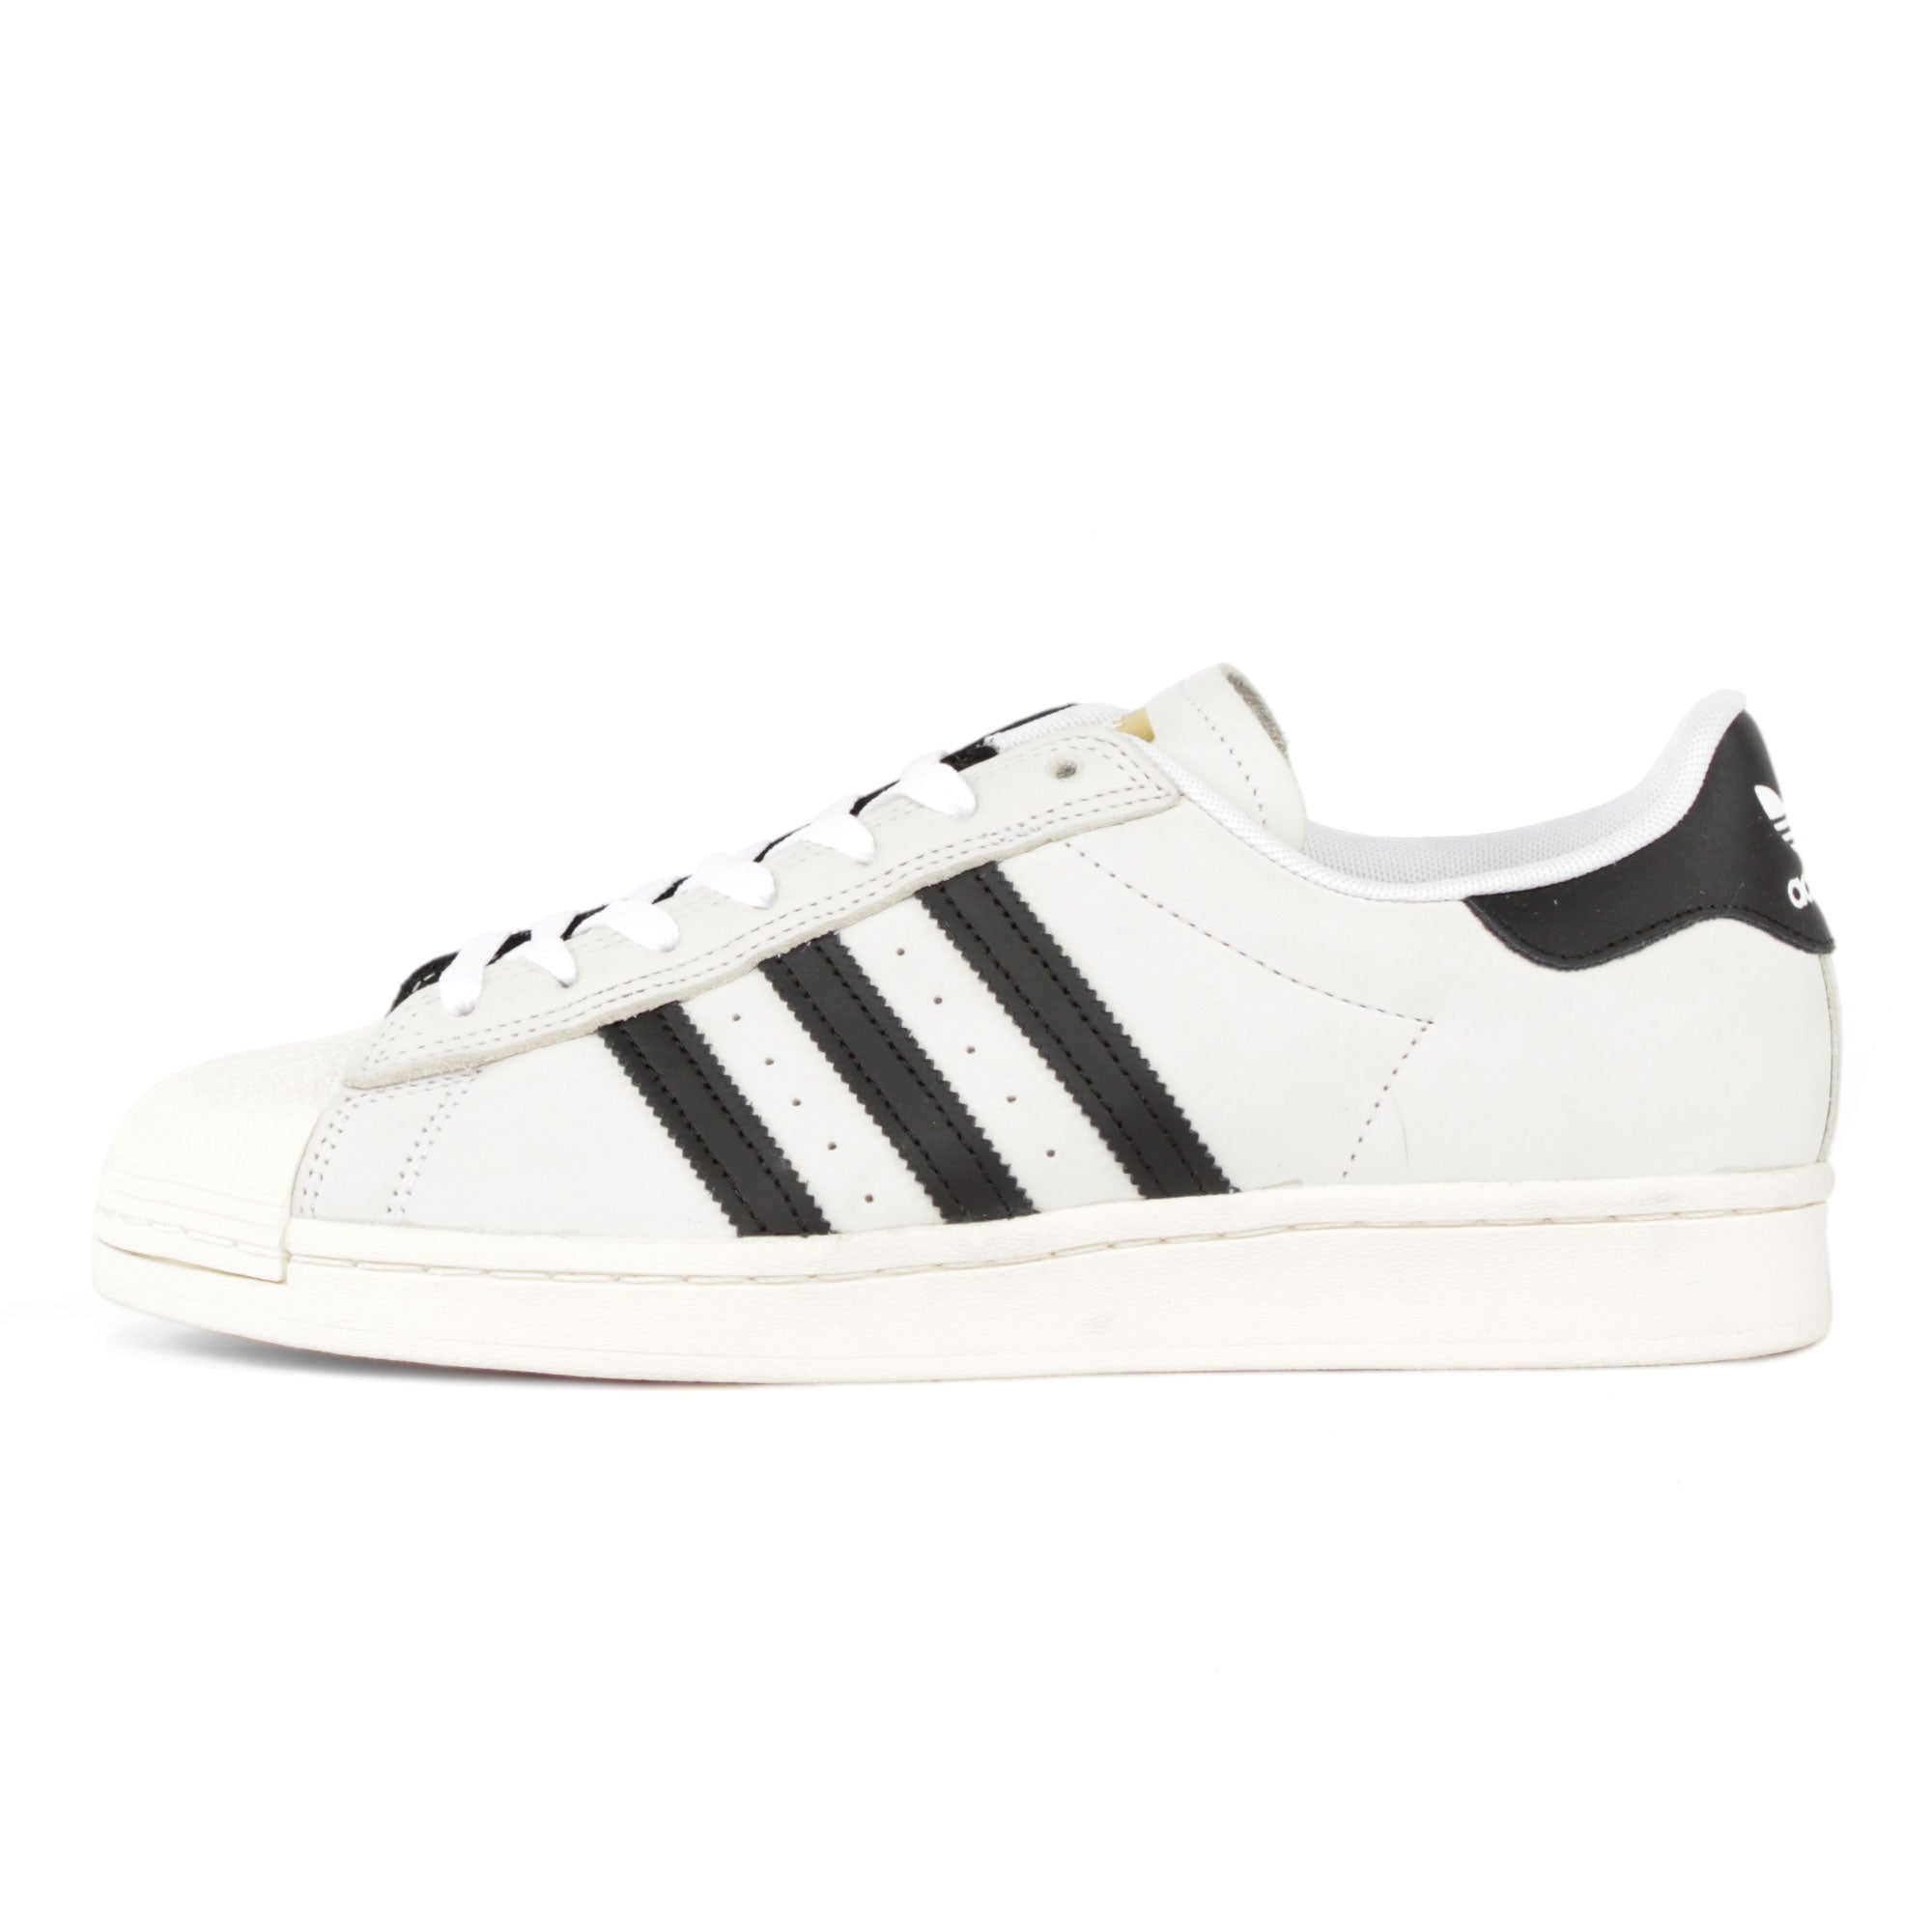 Adidas Superstar ADV Product Photo #1